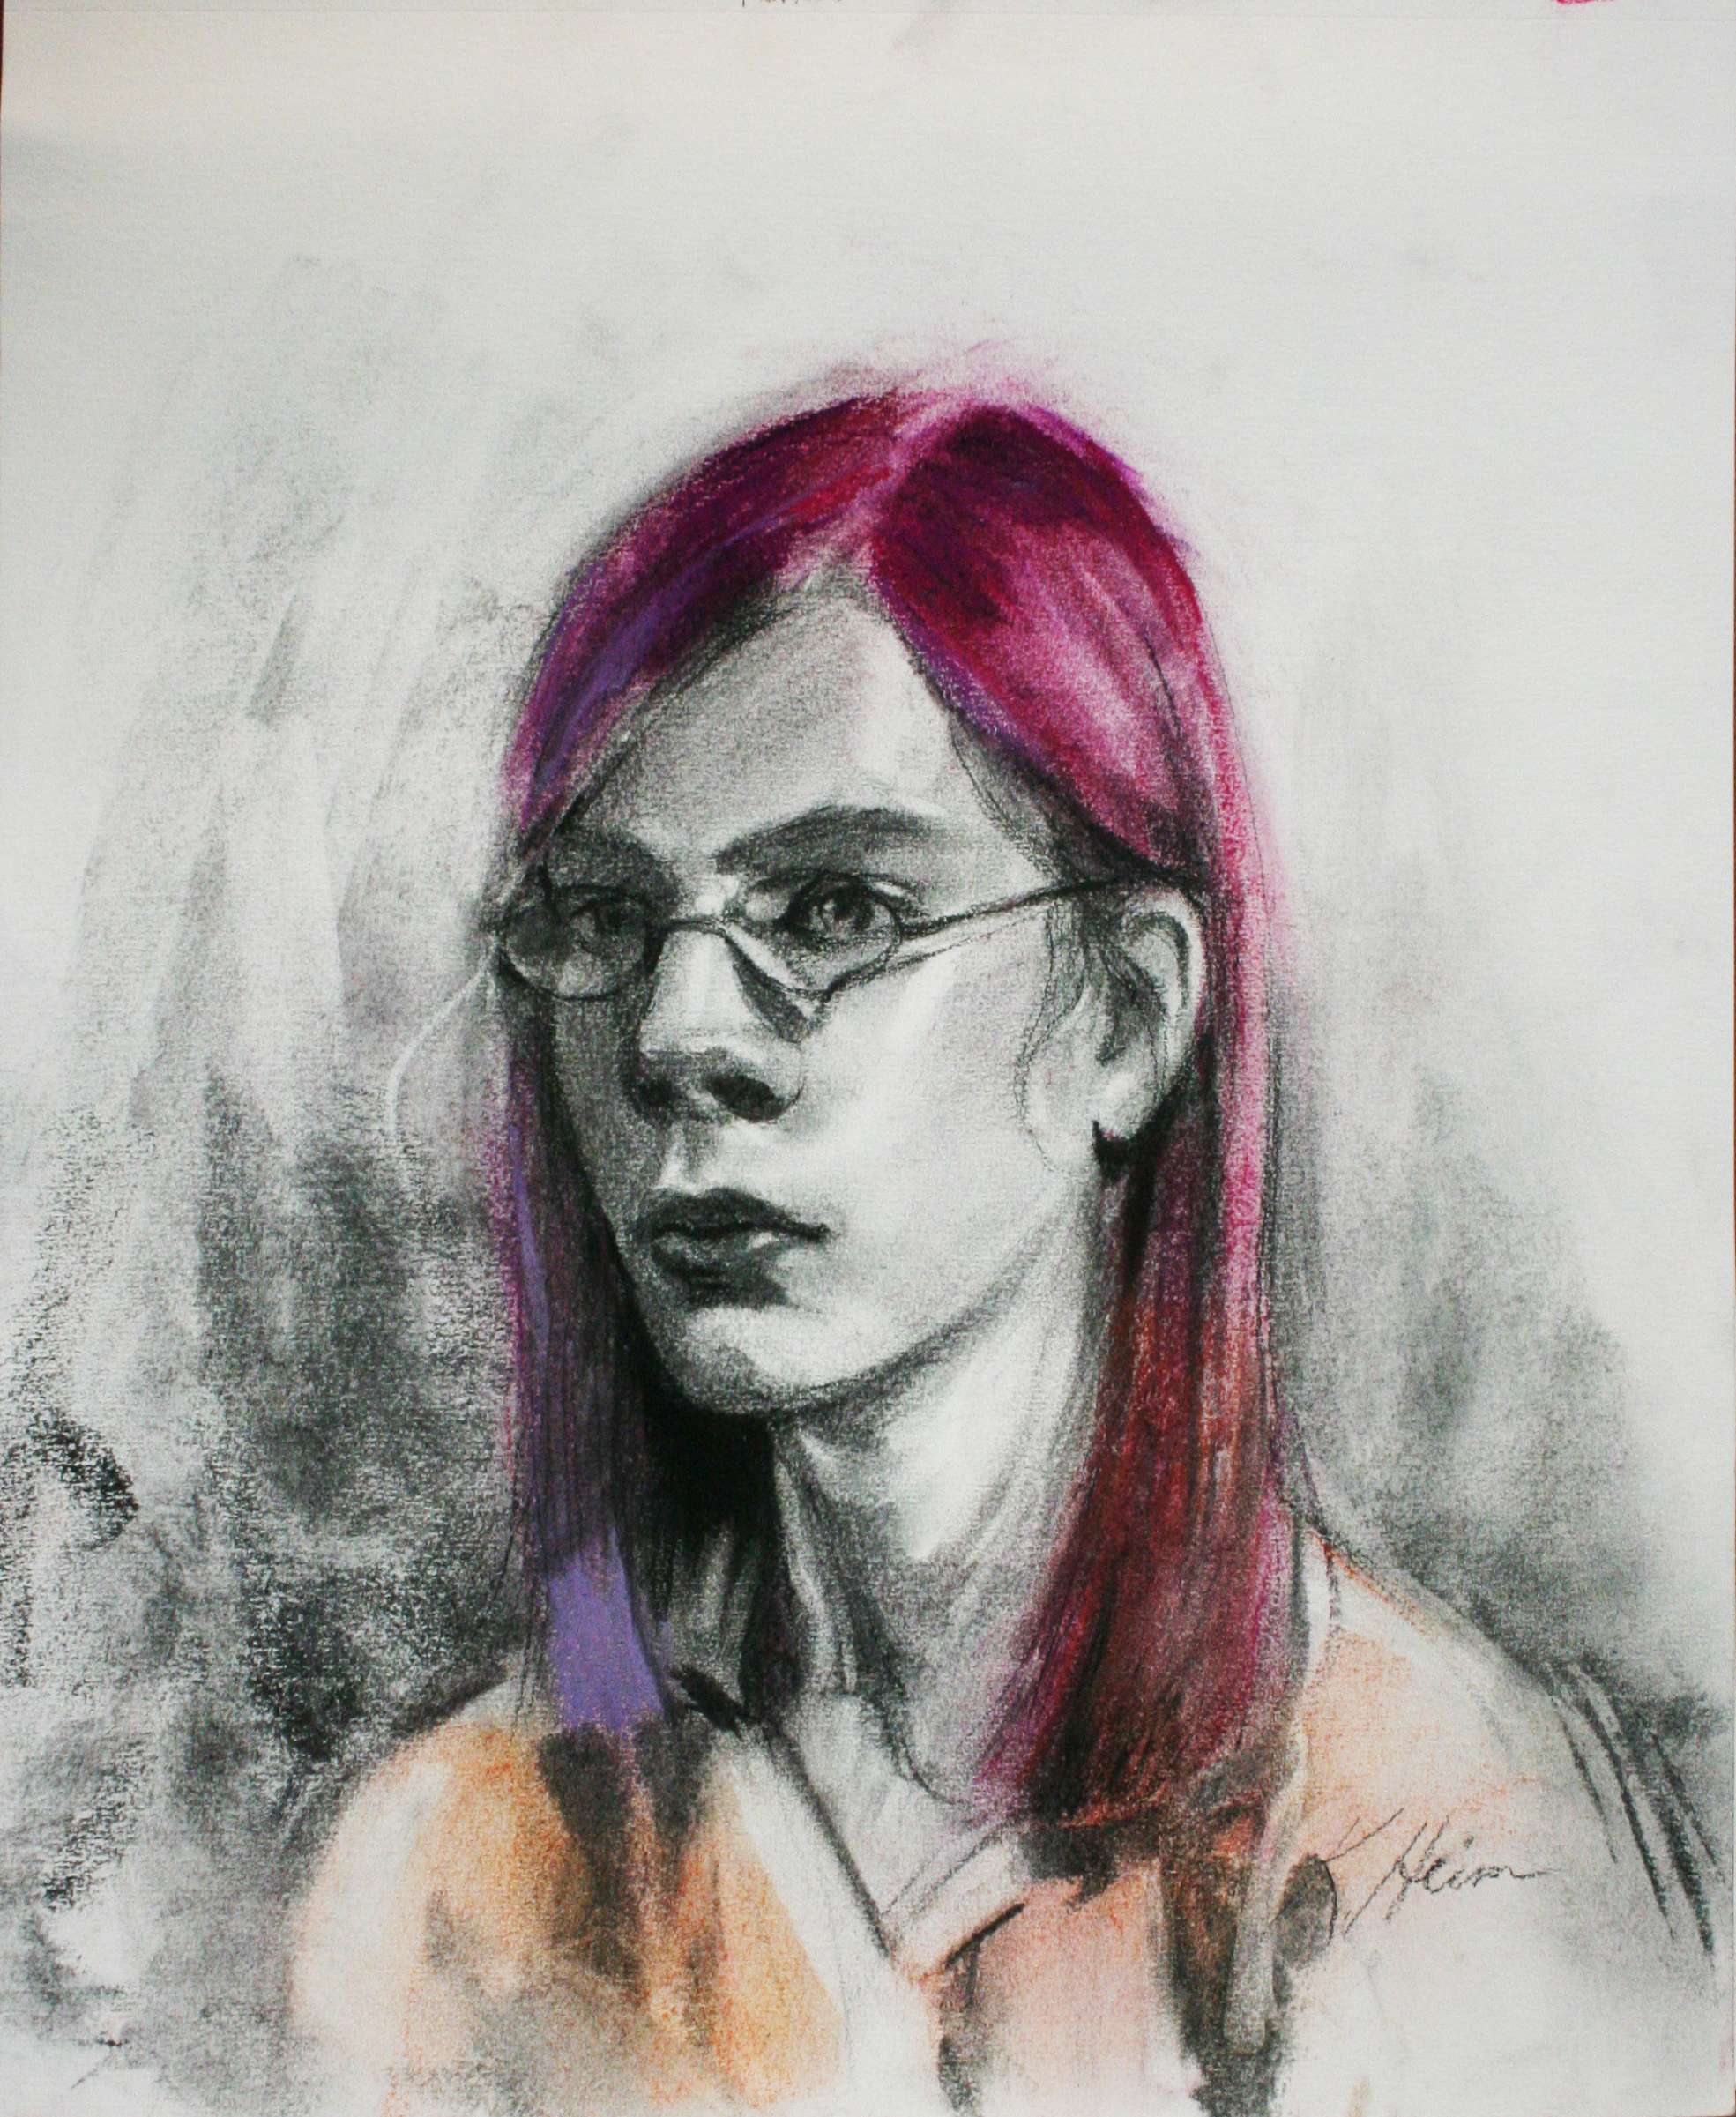 Kathryn Heim did this 3-hour charcoal and pastel drawing.